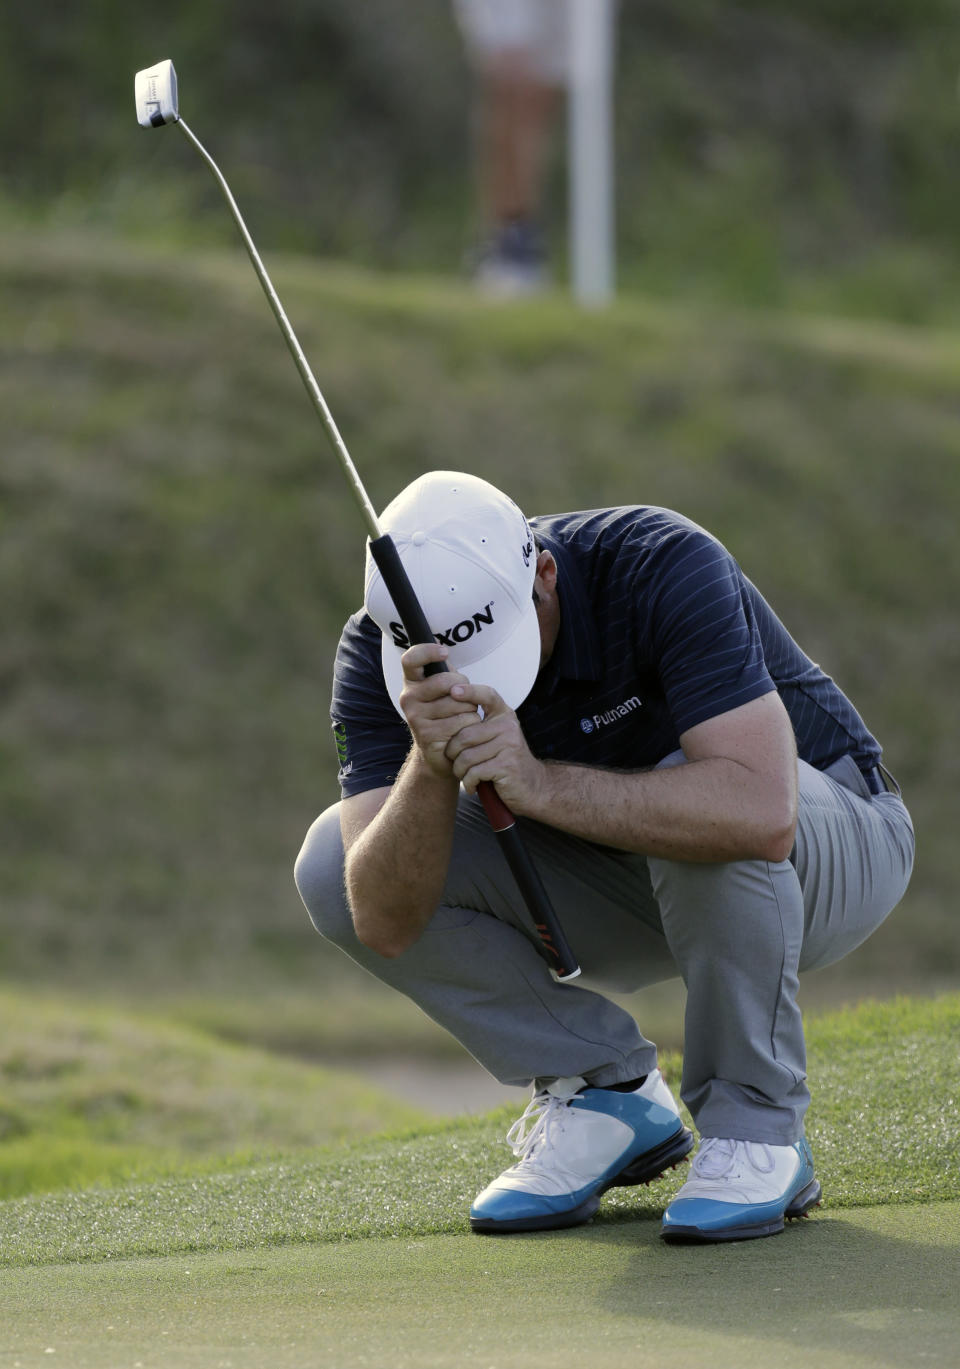 Keegan Bradley reacts to missing a putt on the 16th hole during round-robin play at the Dell Technologies Match Play golf tournament Wednesday, March 21, 2018, in Austin, Texas. (AP Photo/Eric Gay)